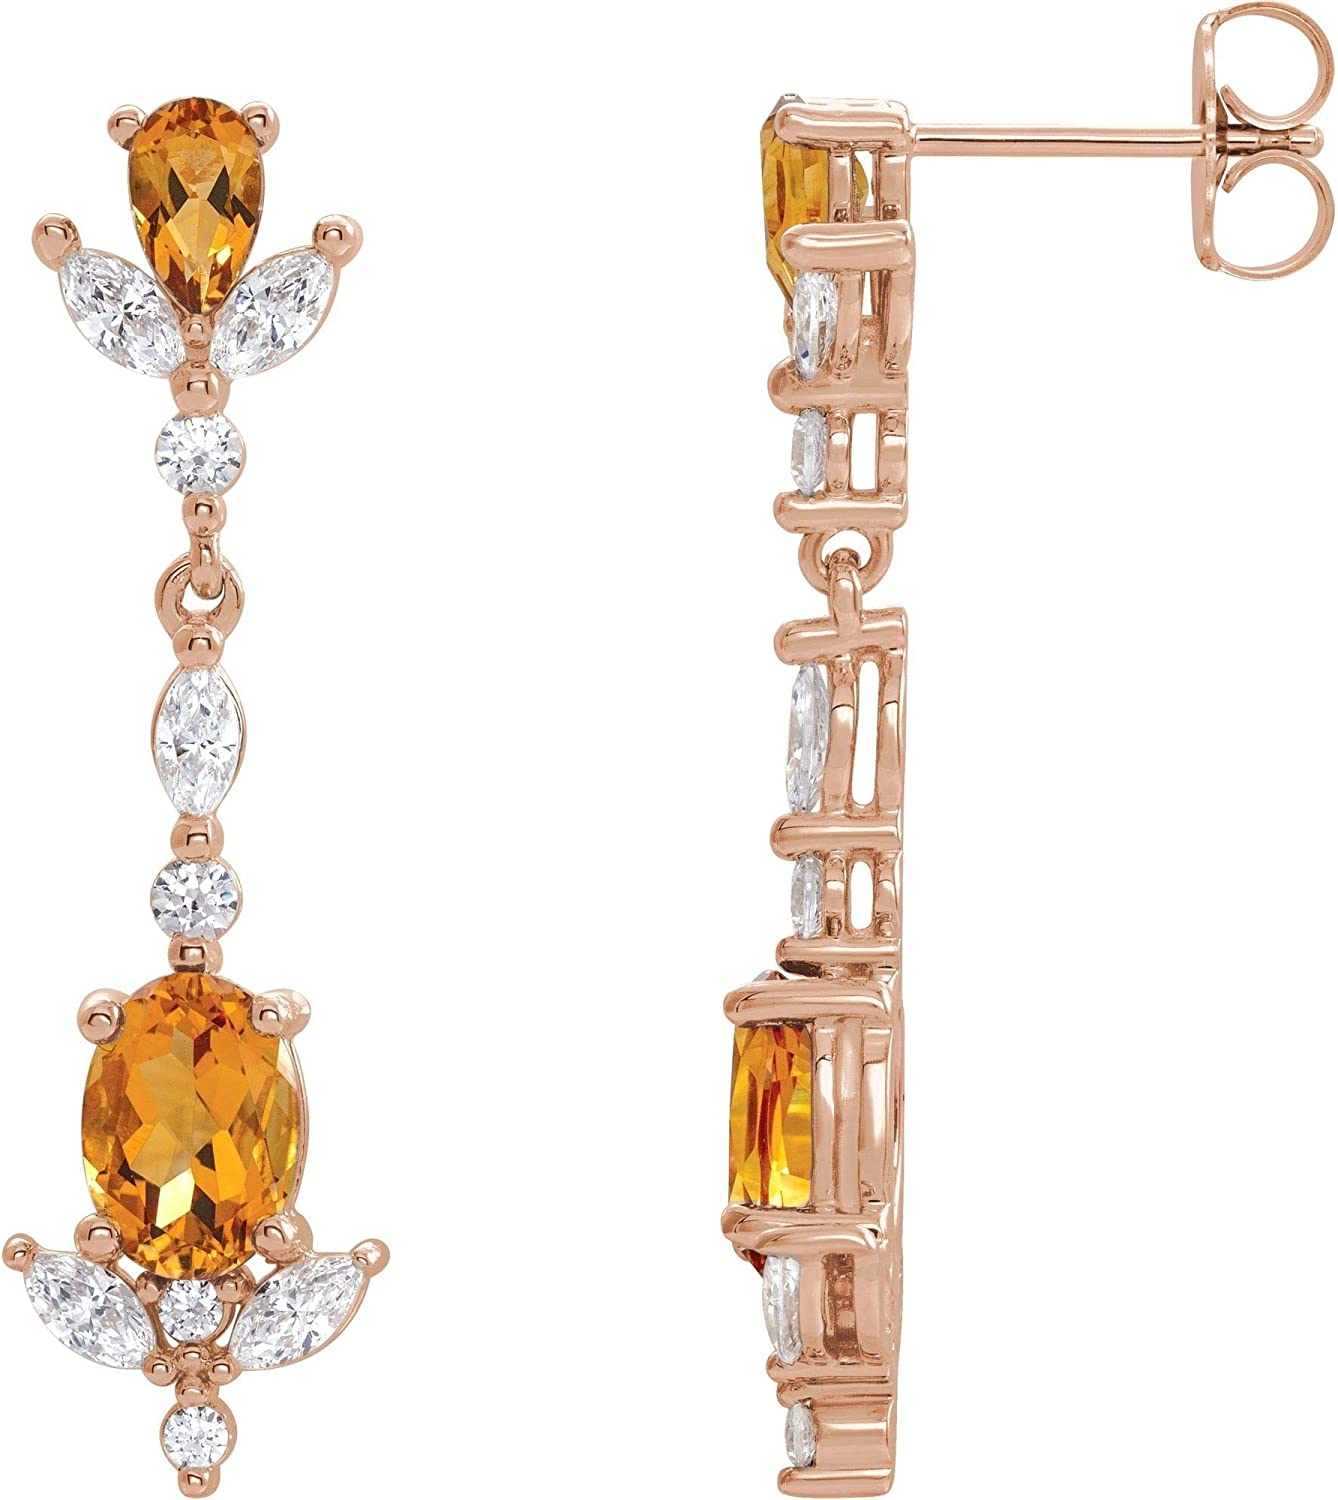 14kt 4 years warranty Rose Gold Citrine and CTW favorite 3 Earrings Diamond